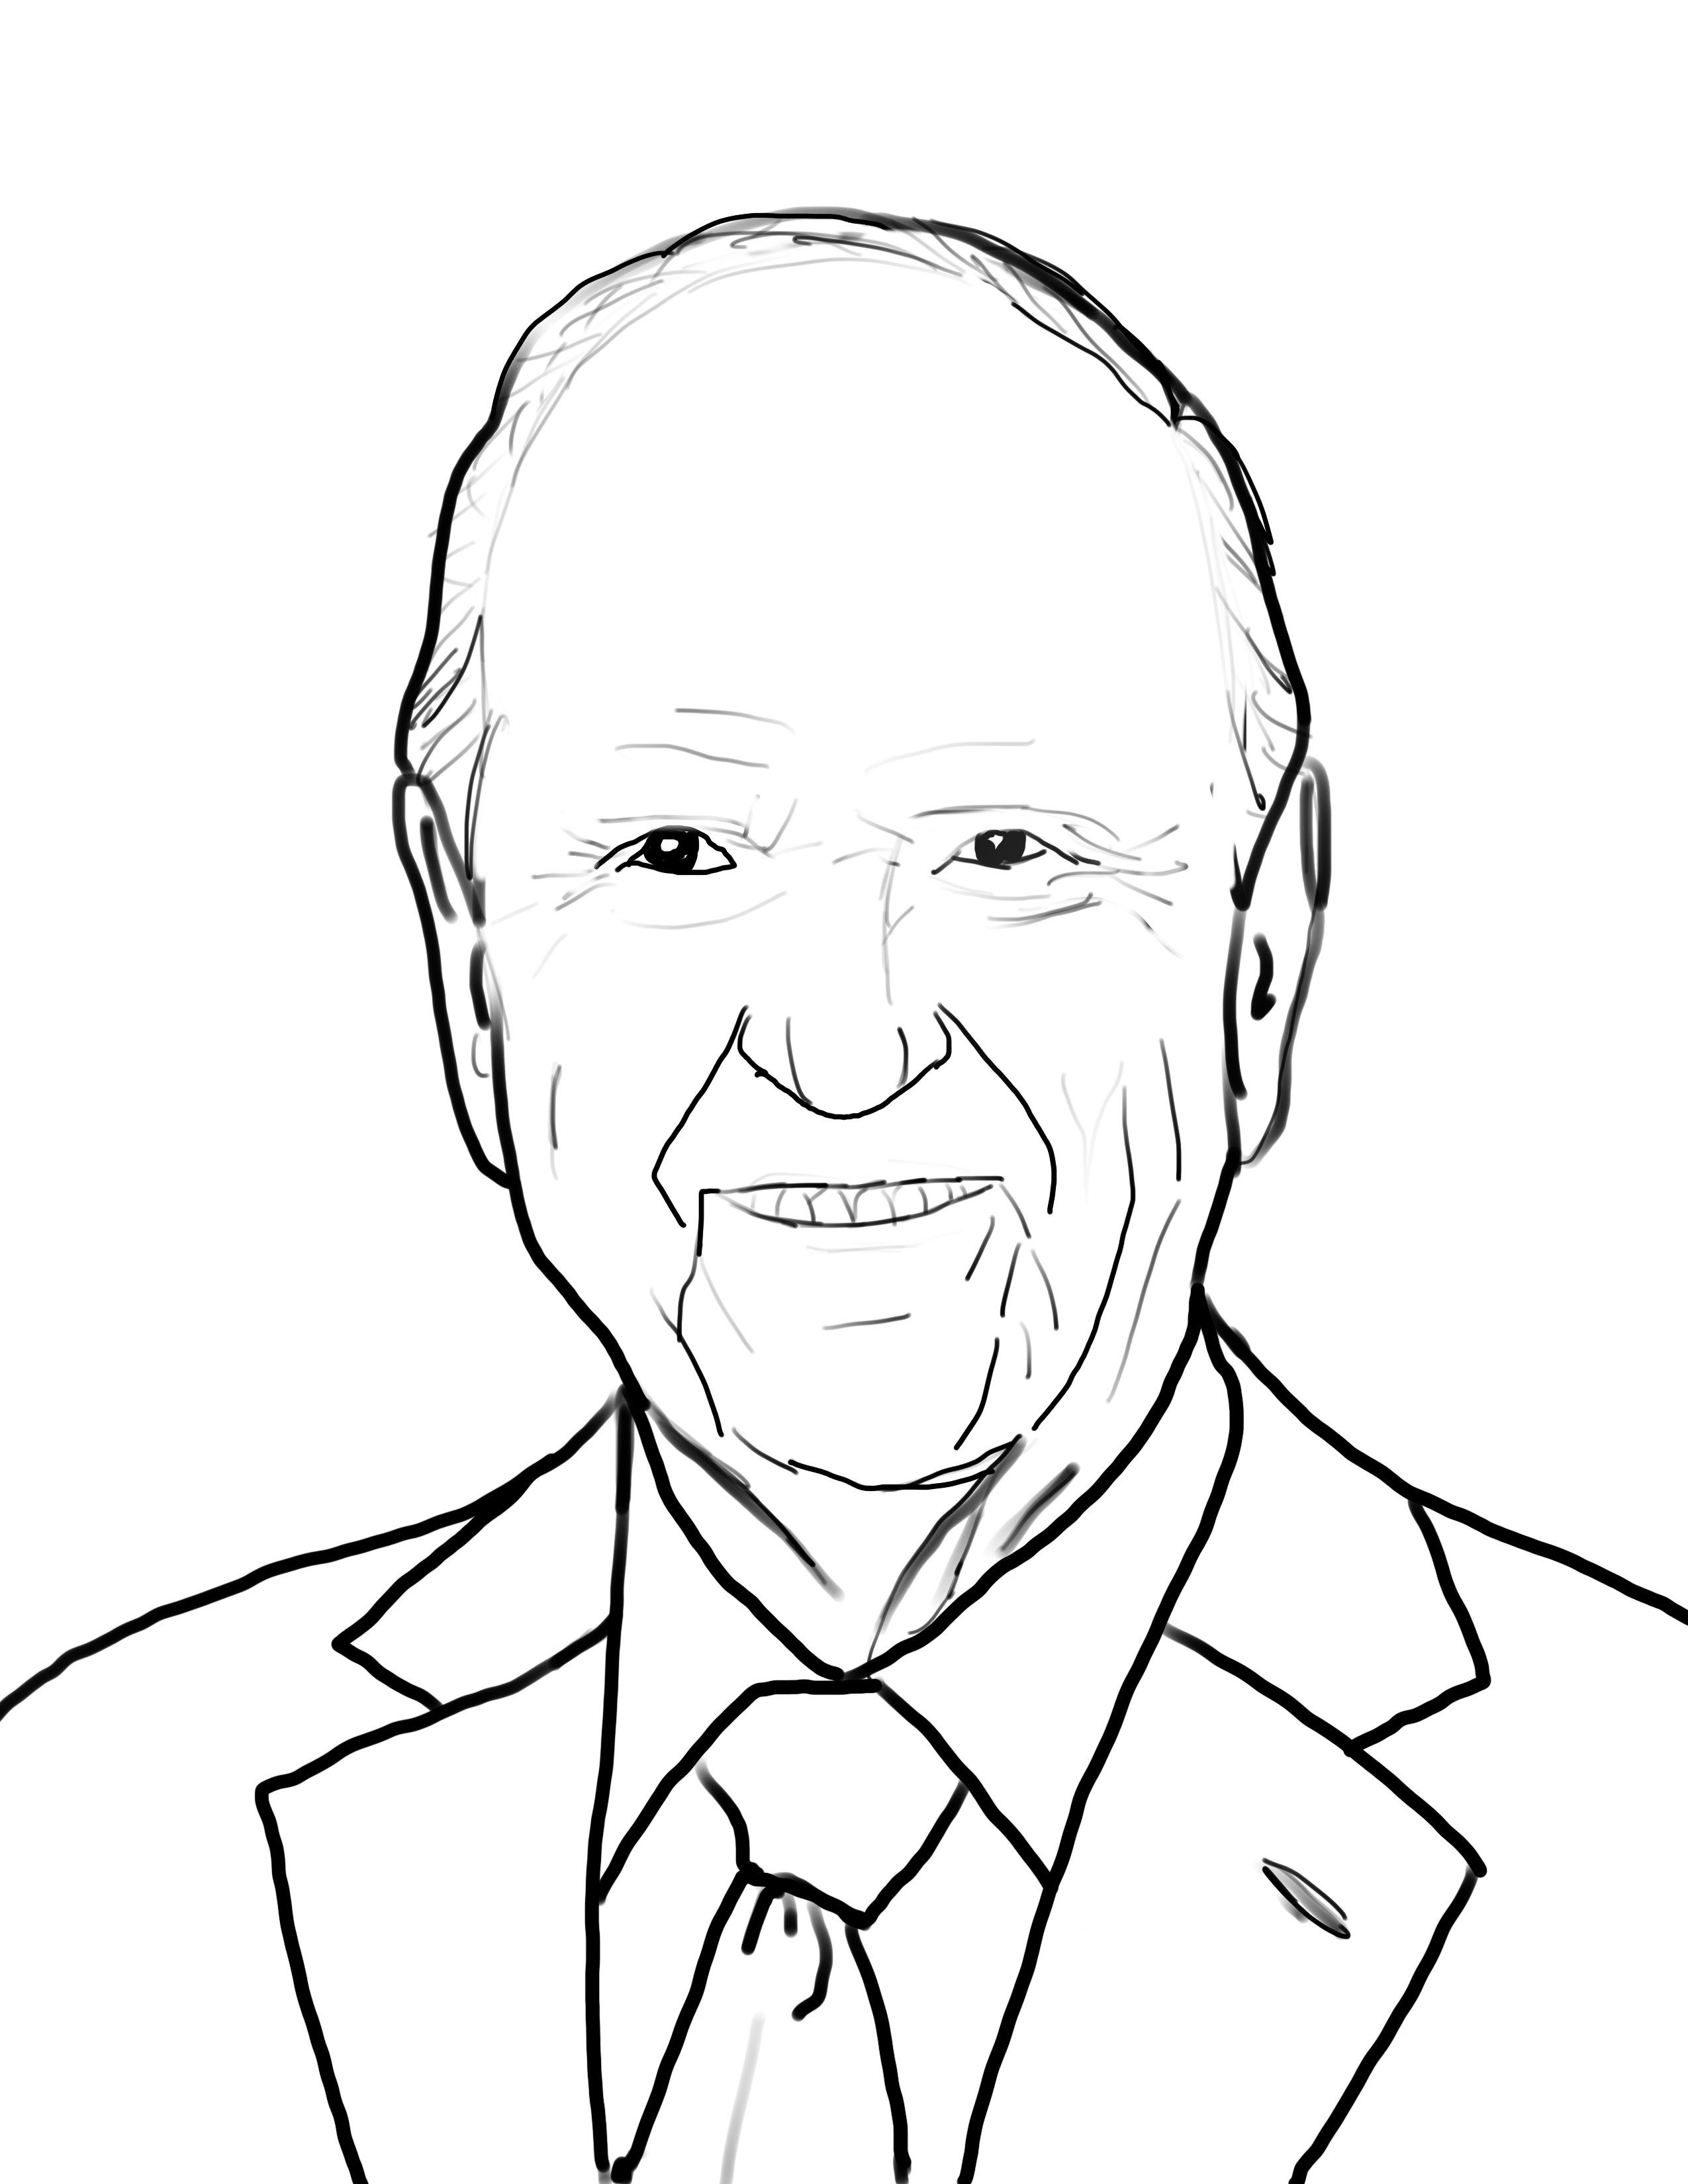 Lds black and white clipart of prophets jpg library President Russell M. Nelson coloring Page   Primary   Lds ... jpg library